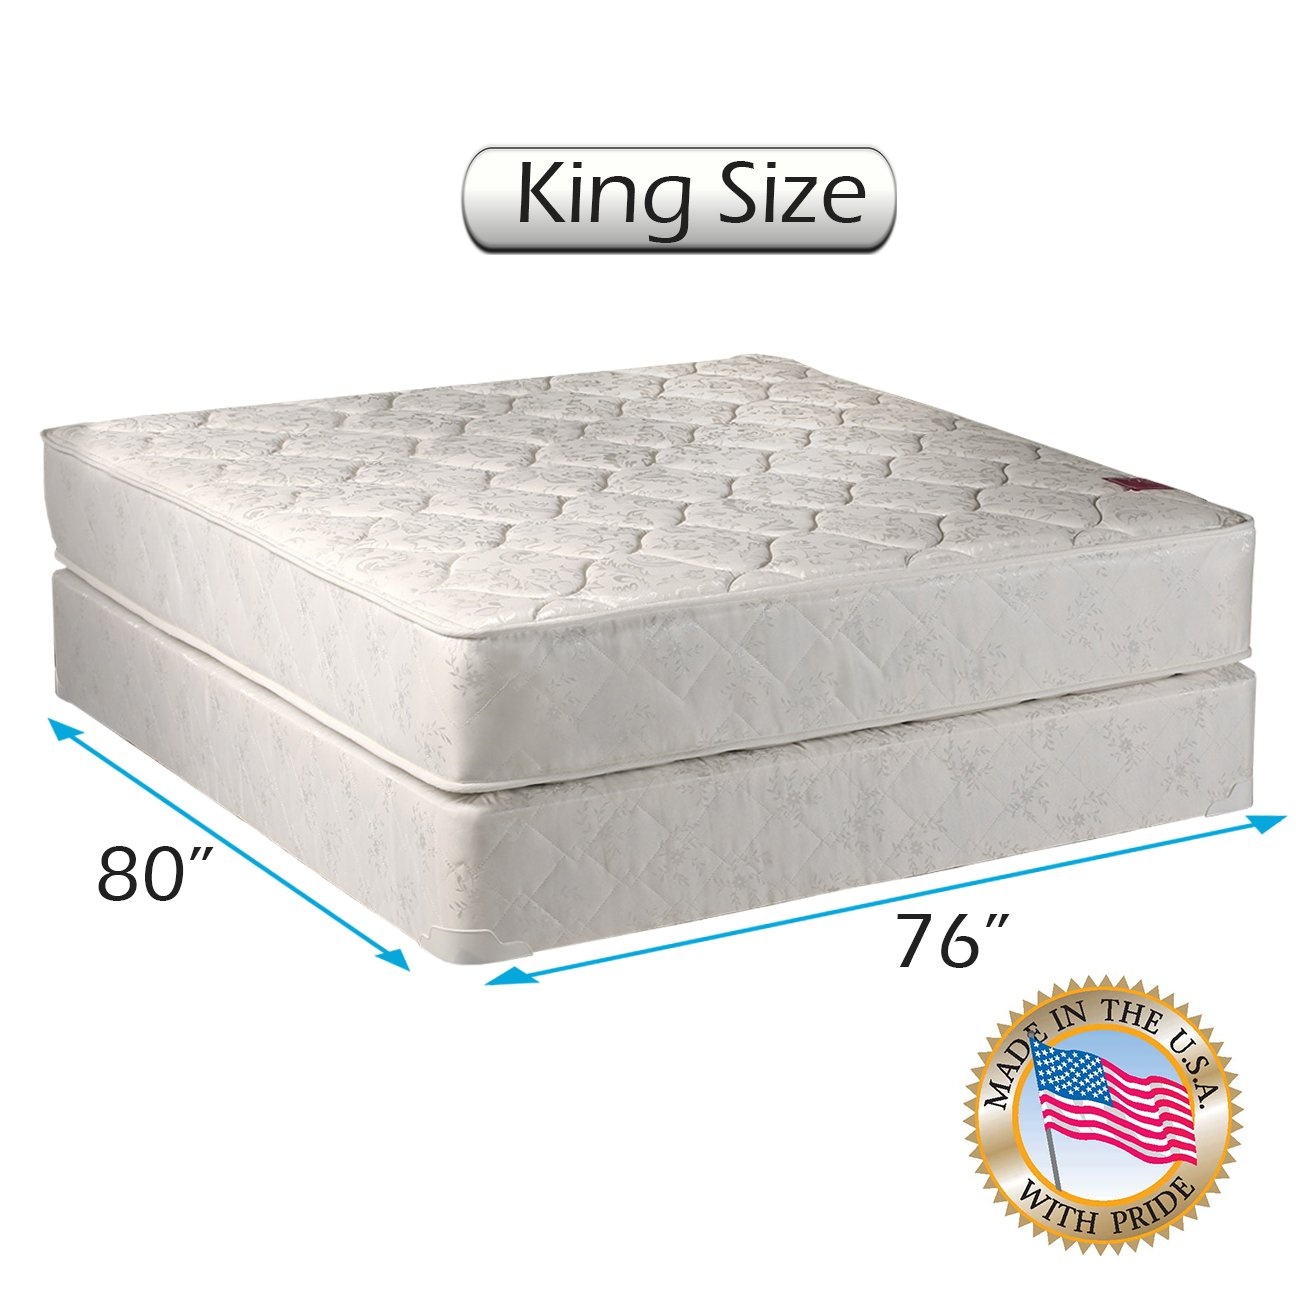 Legacy King Size (76''x80''x8'') Mattress and Box Spring Set - Fully Assembled, Good for your back, Superior Quality - Long Lasting and 2 Sided - By Dream Solutions USA by Dream Solutions USA